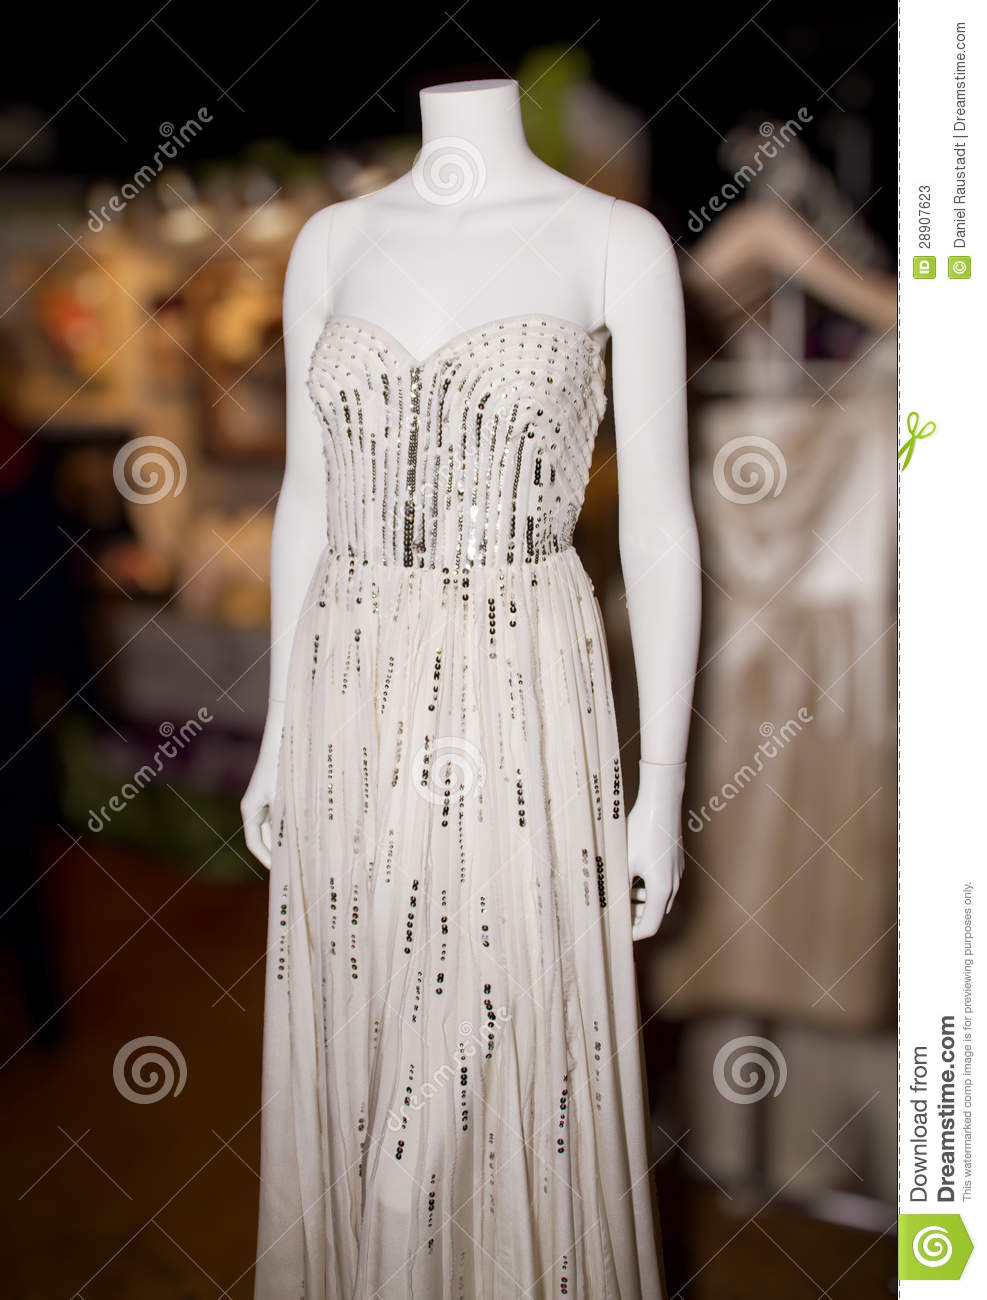 Bling Wedding Dresses On Manikins